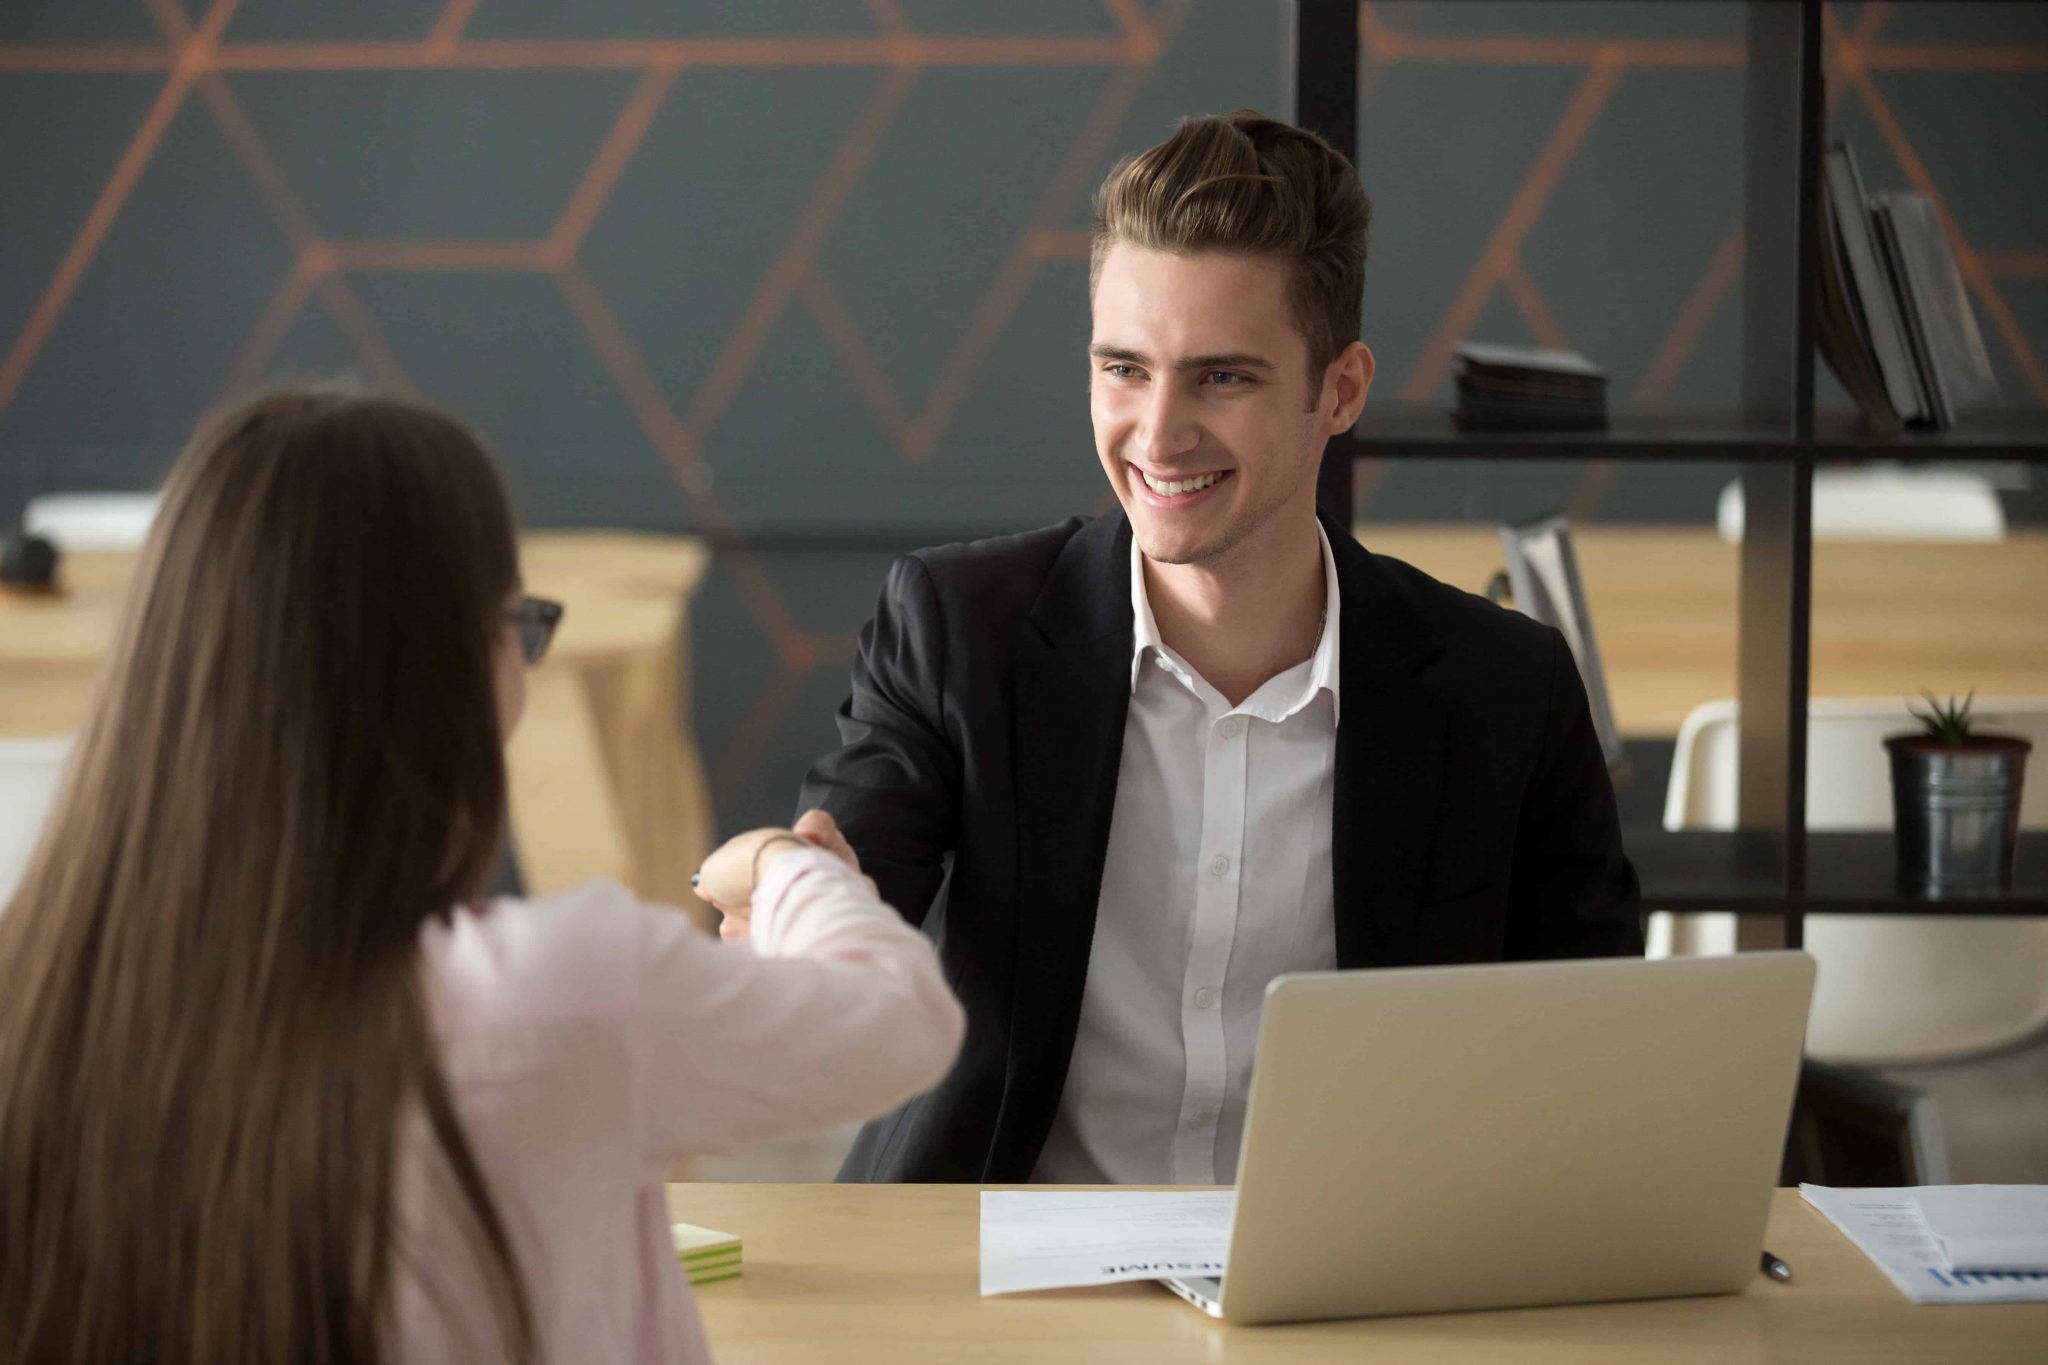 What is the importance of human resource management